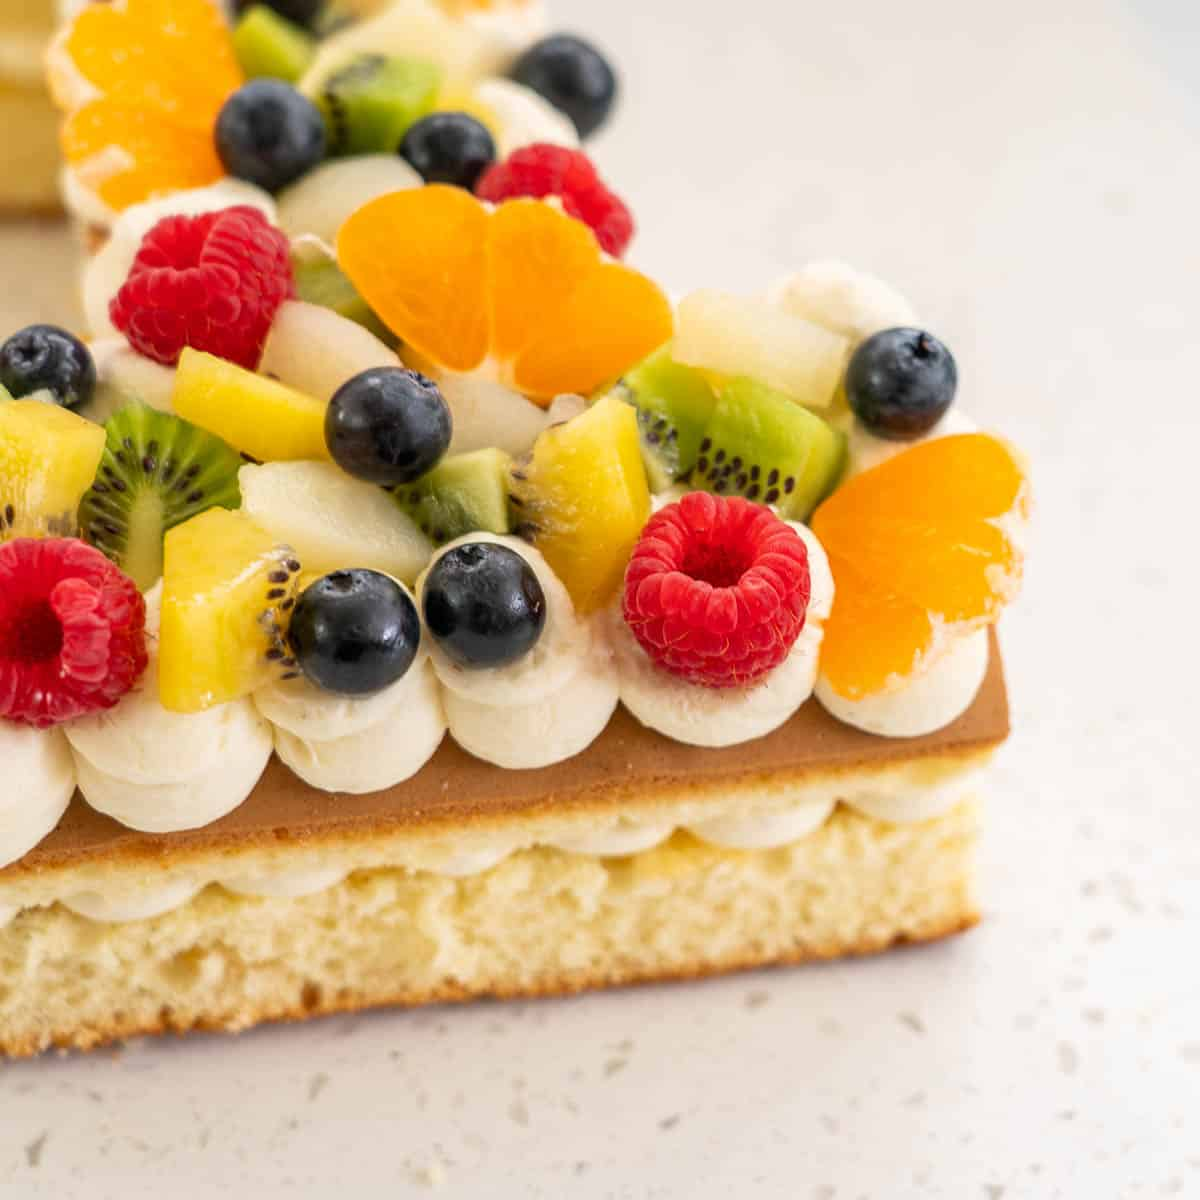 close up of fruit decorations on a birthday cake, raspberries, blueberries, kiwifruit, clementines